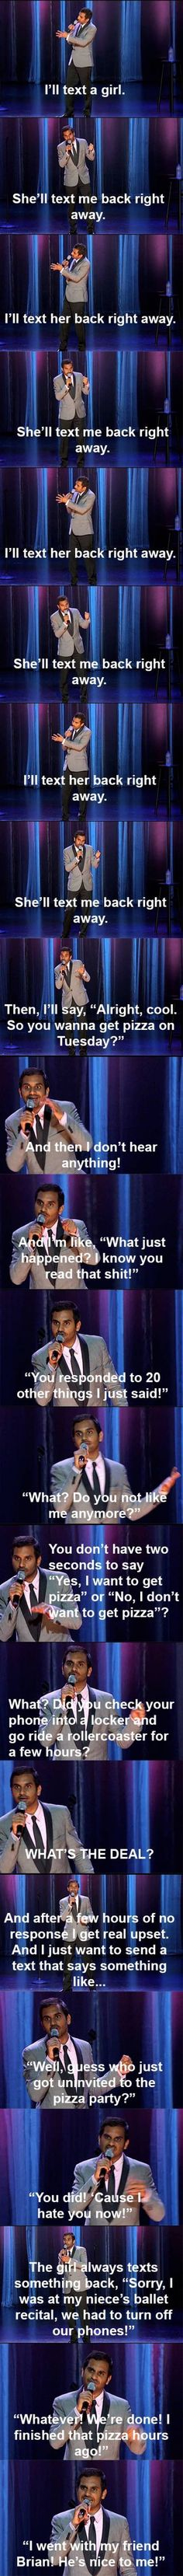 Aziz on texting. Hahaha:::: This is why I love aziz!!!!